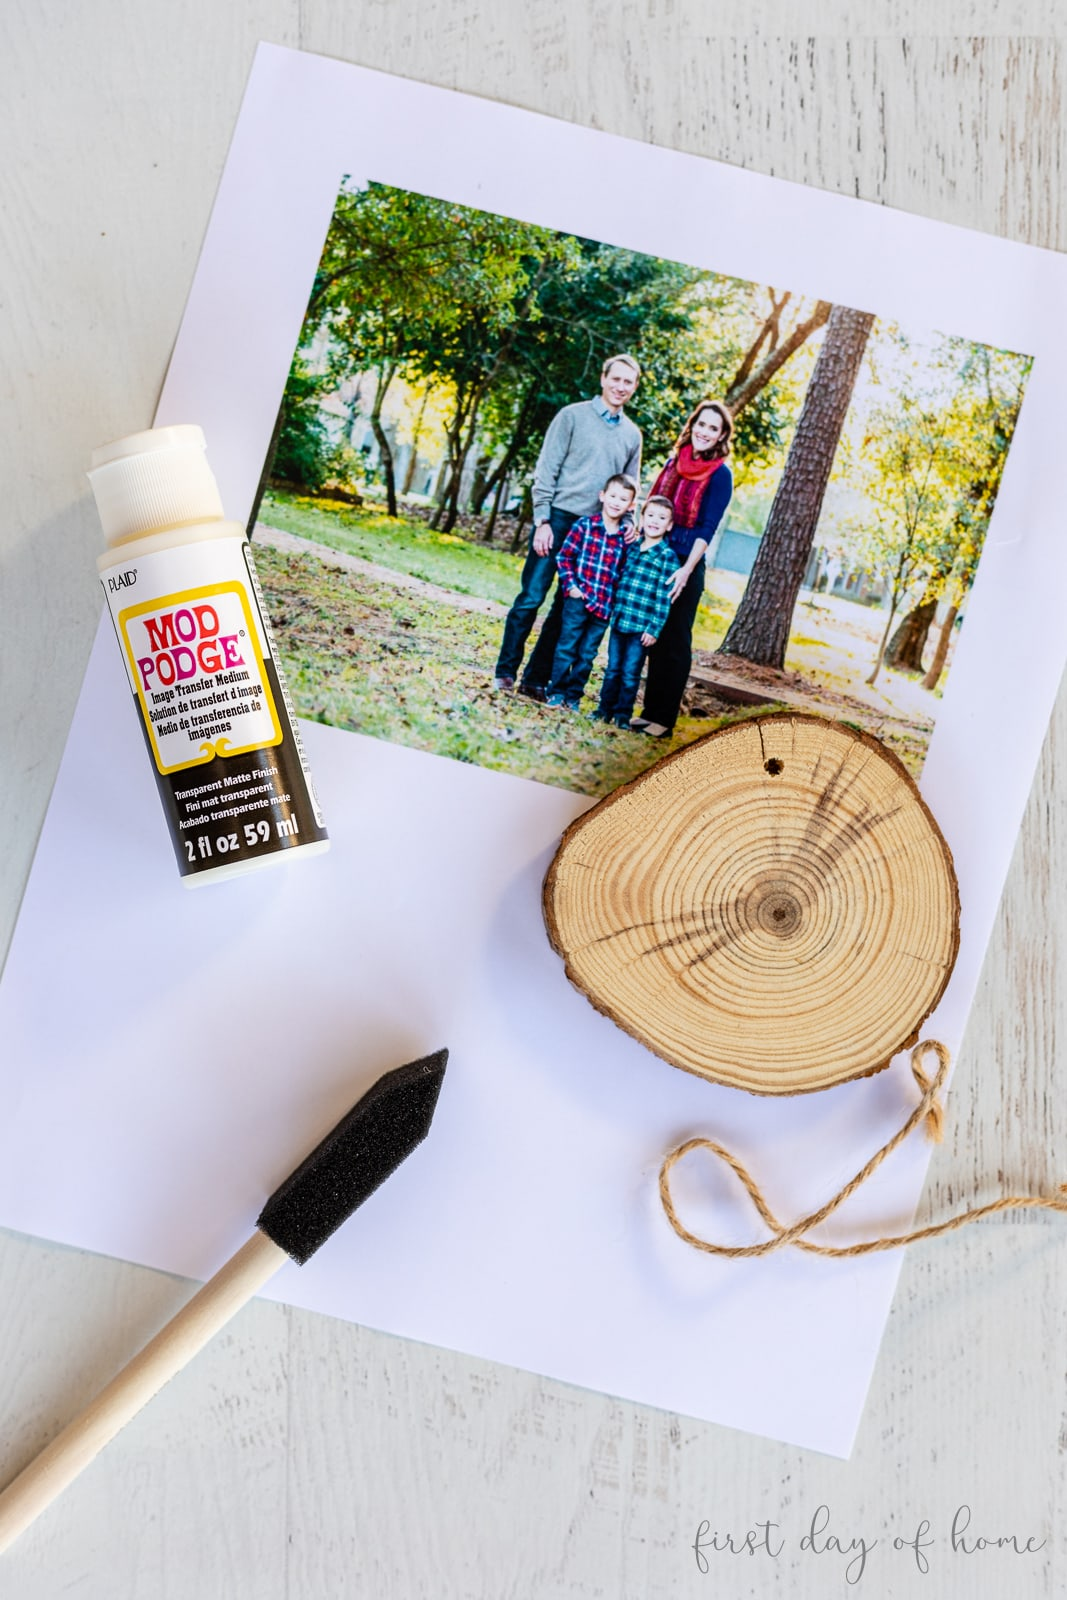 Family photo with wood slice ornament and Mod Podge image transfer medium supplies for photo transfer to wood